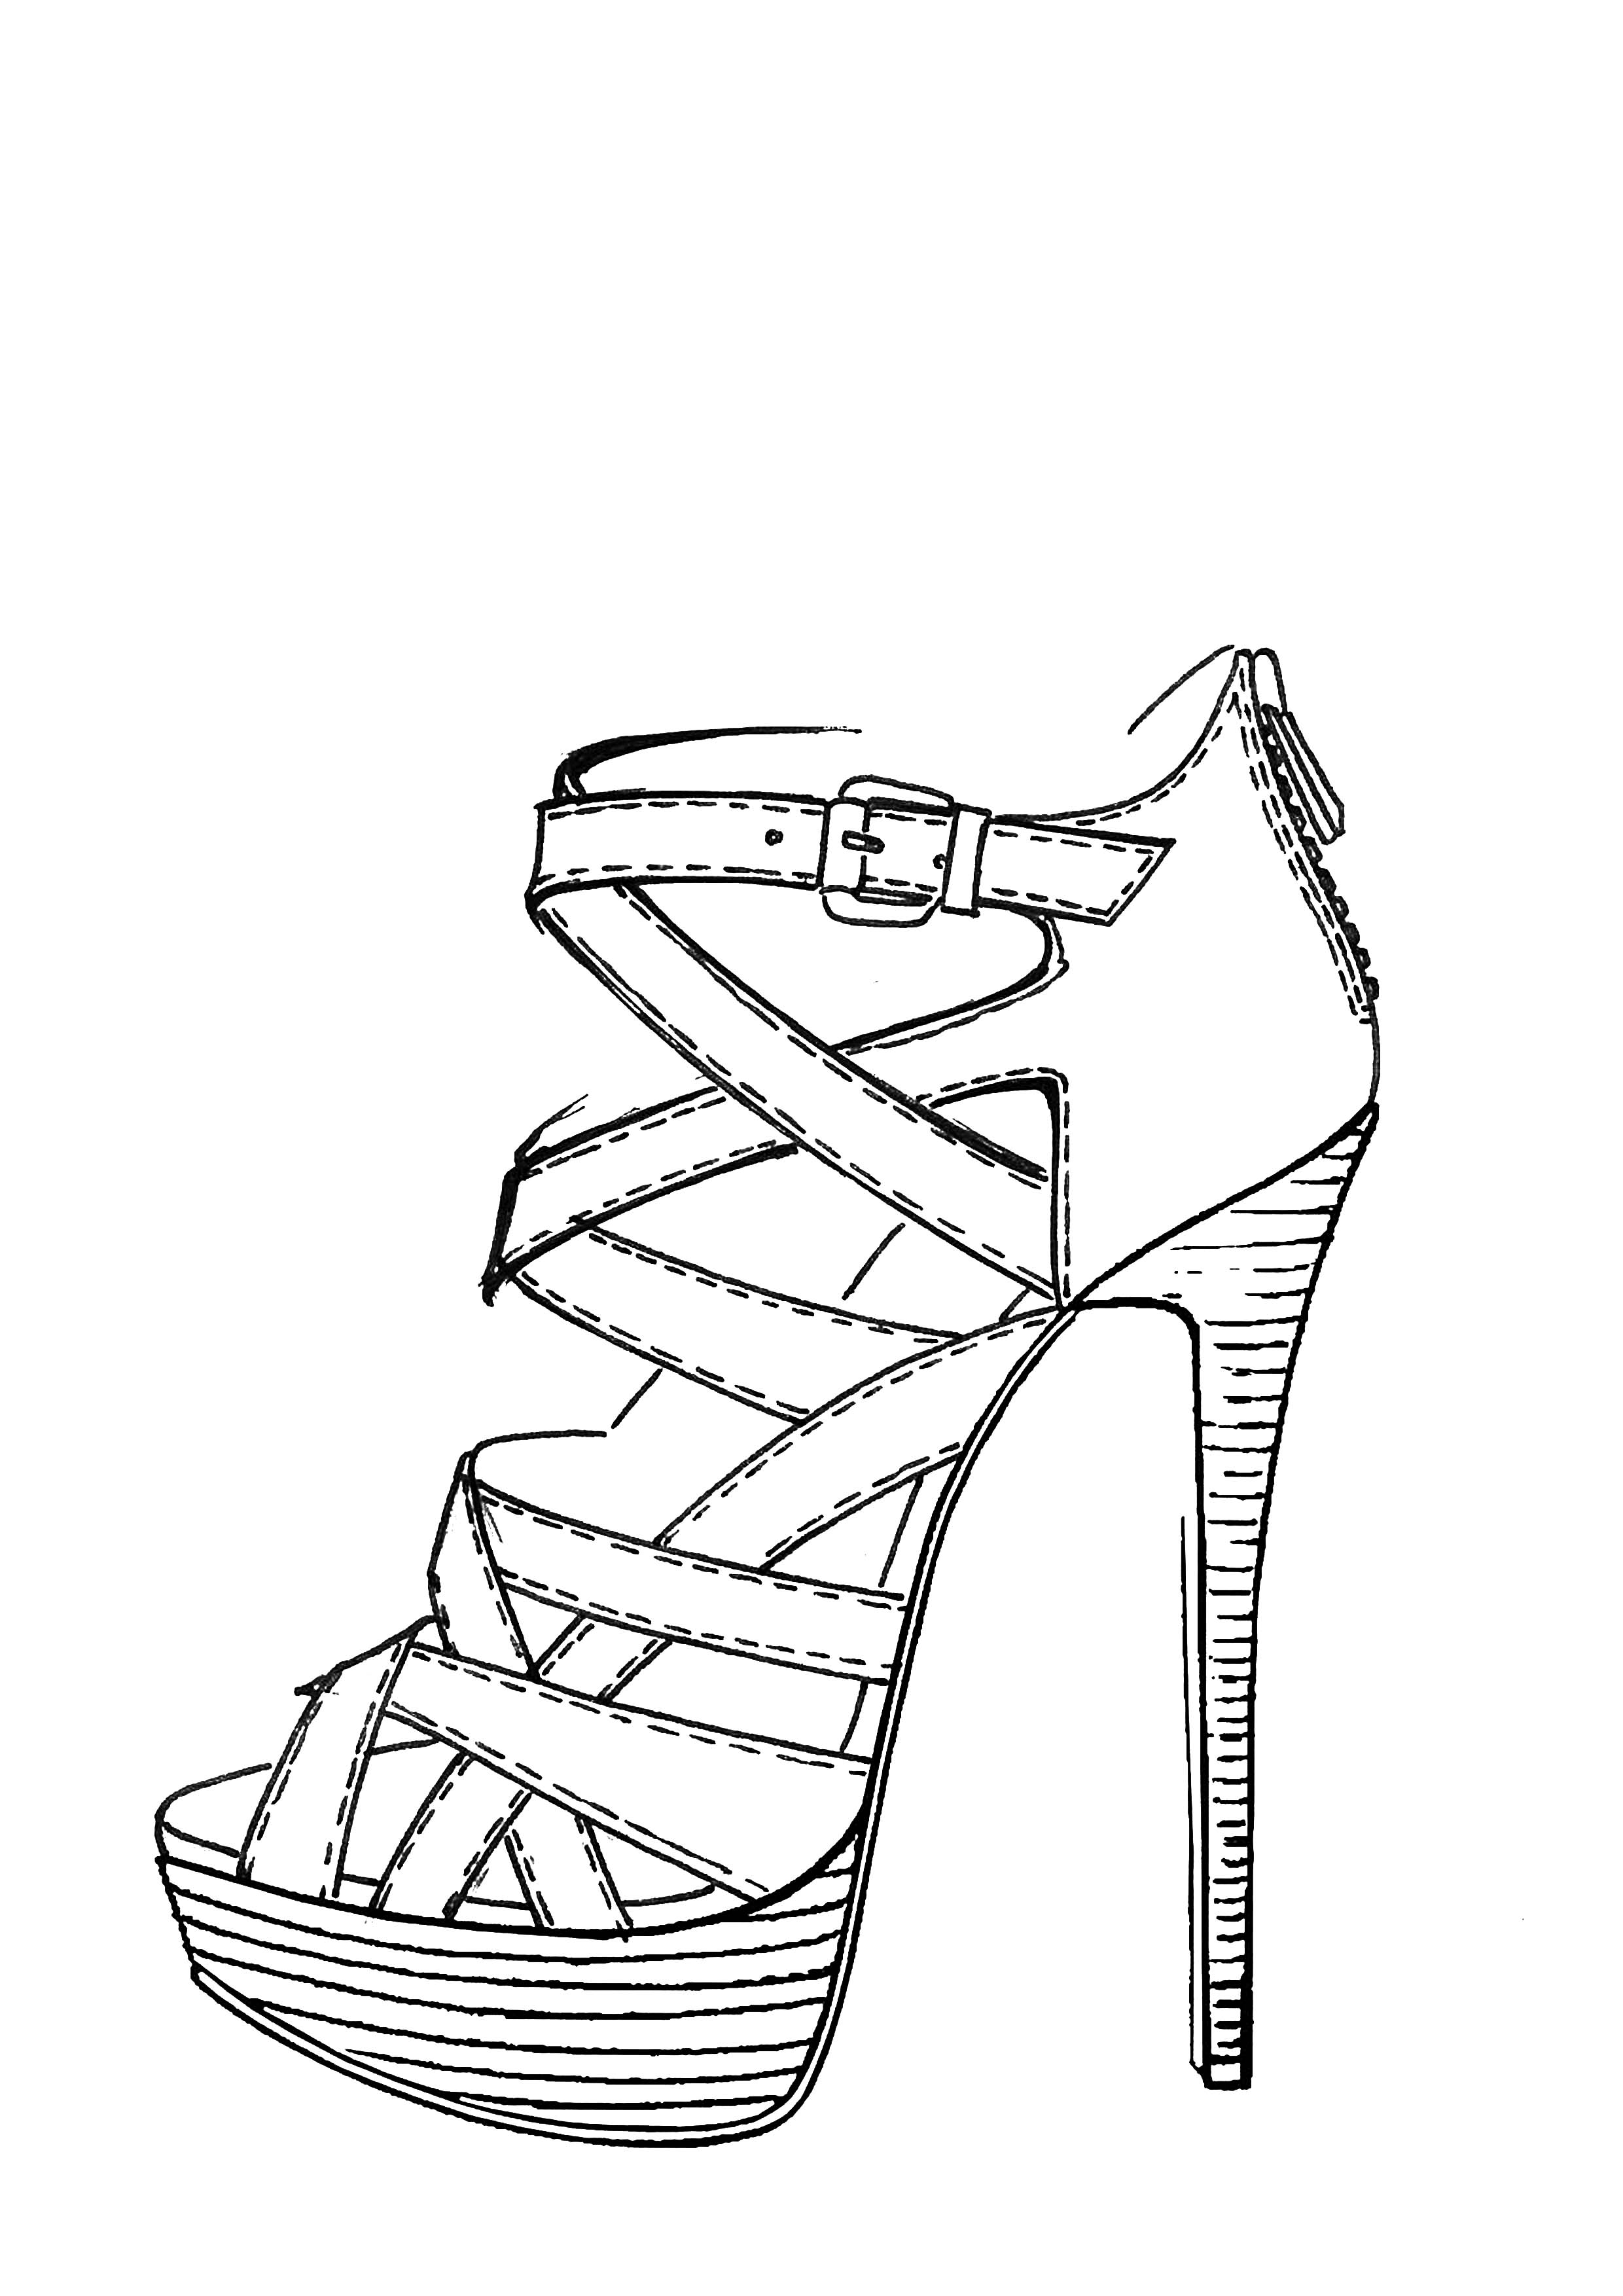 Drawn boots high heel By shoe a for high